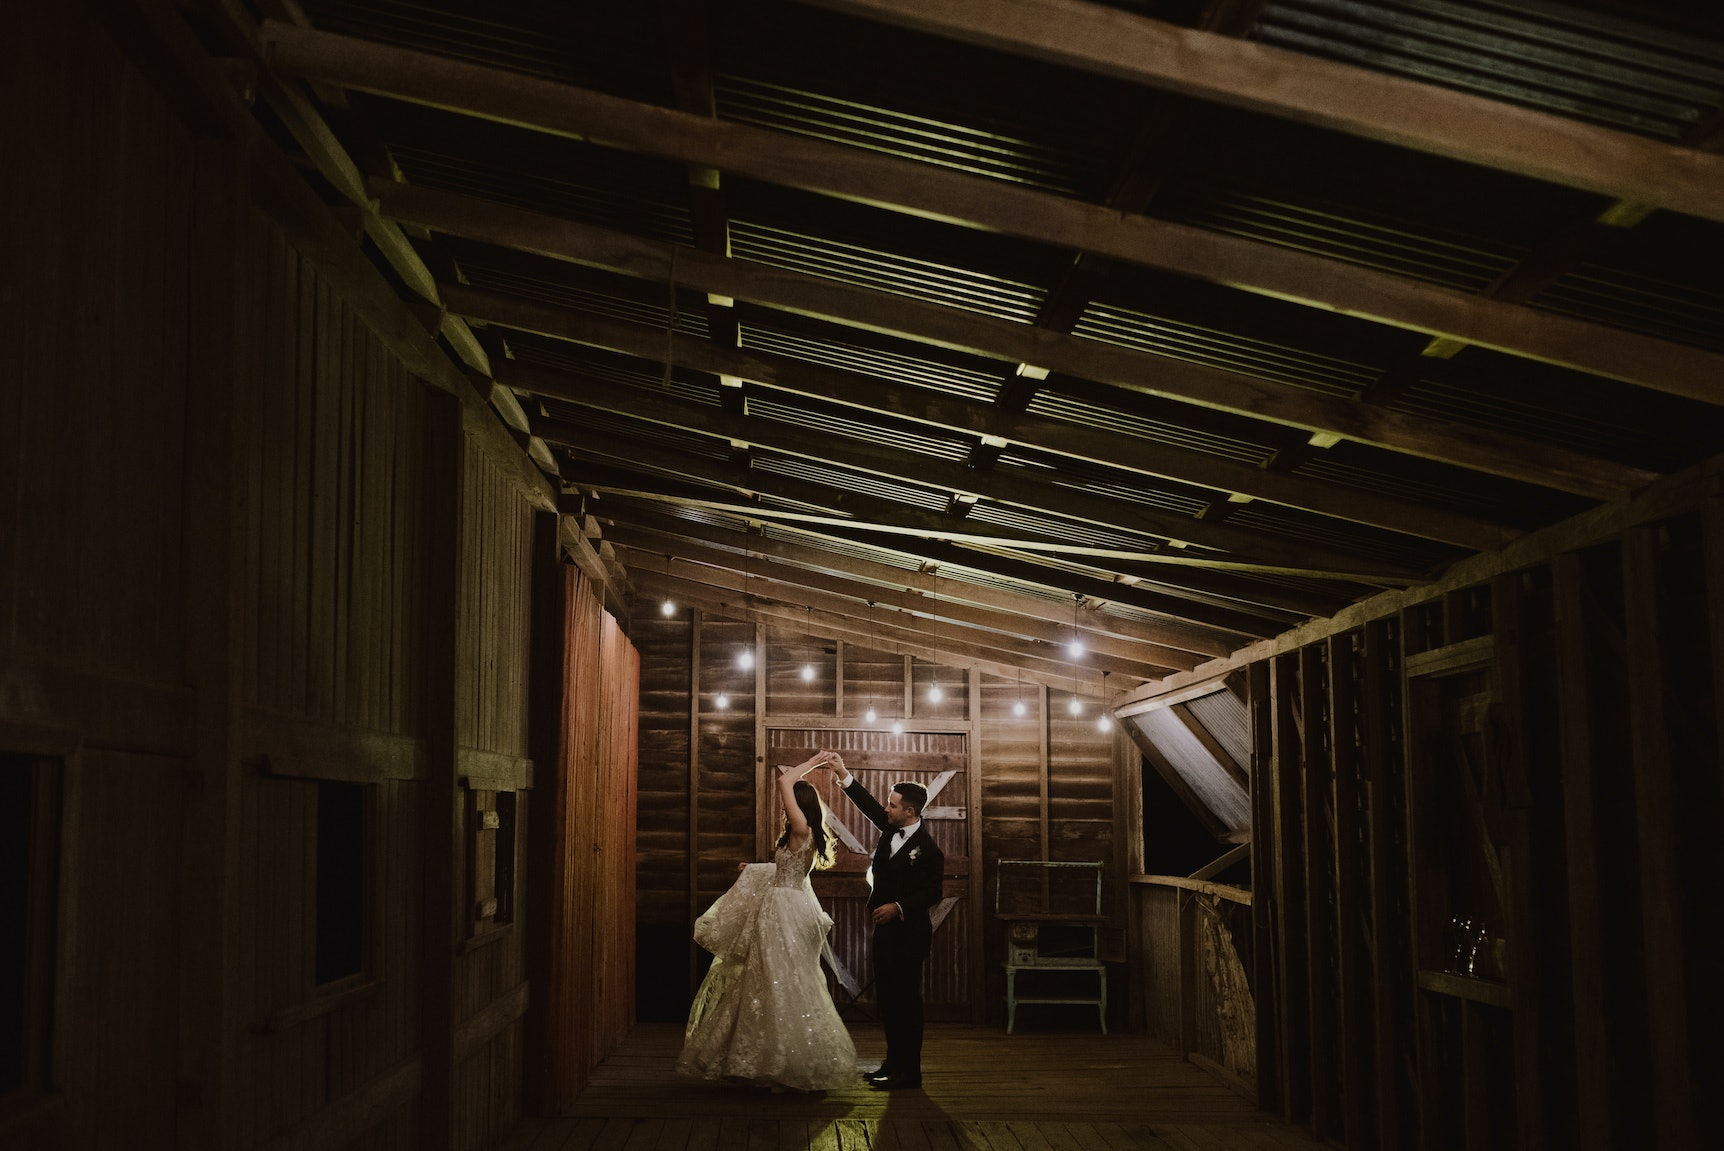 Bride and groom dancing in stables together